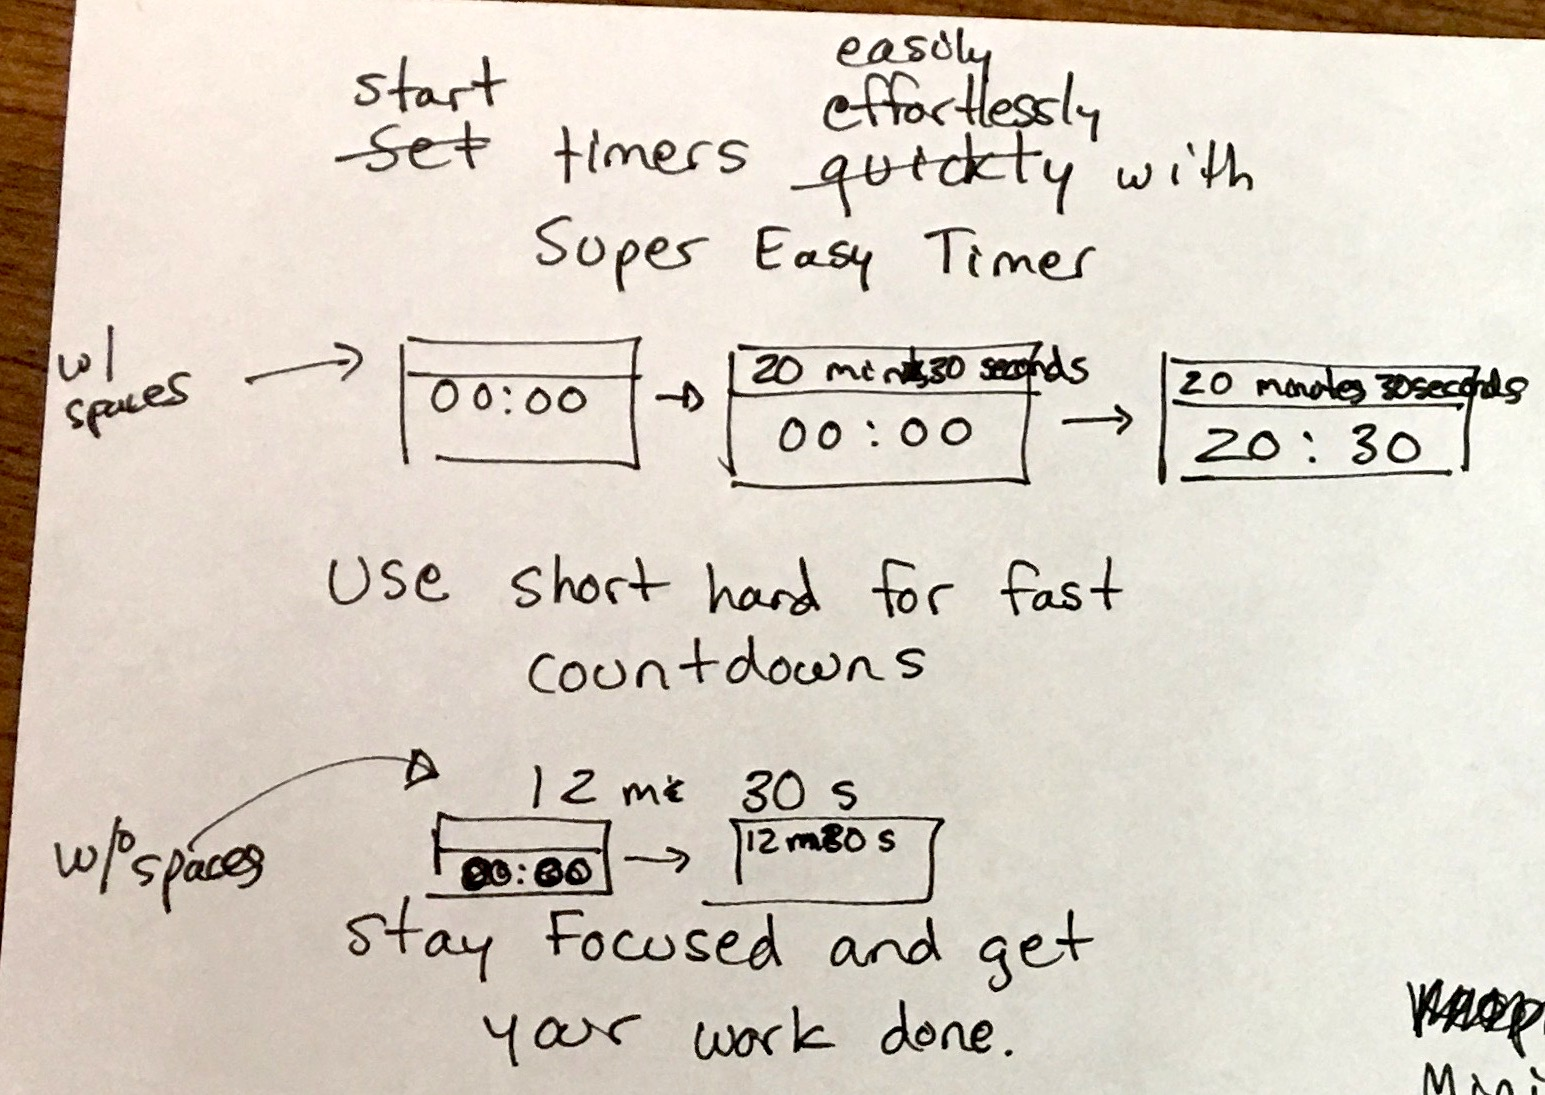 Super-easy-timer-sketch